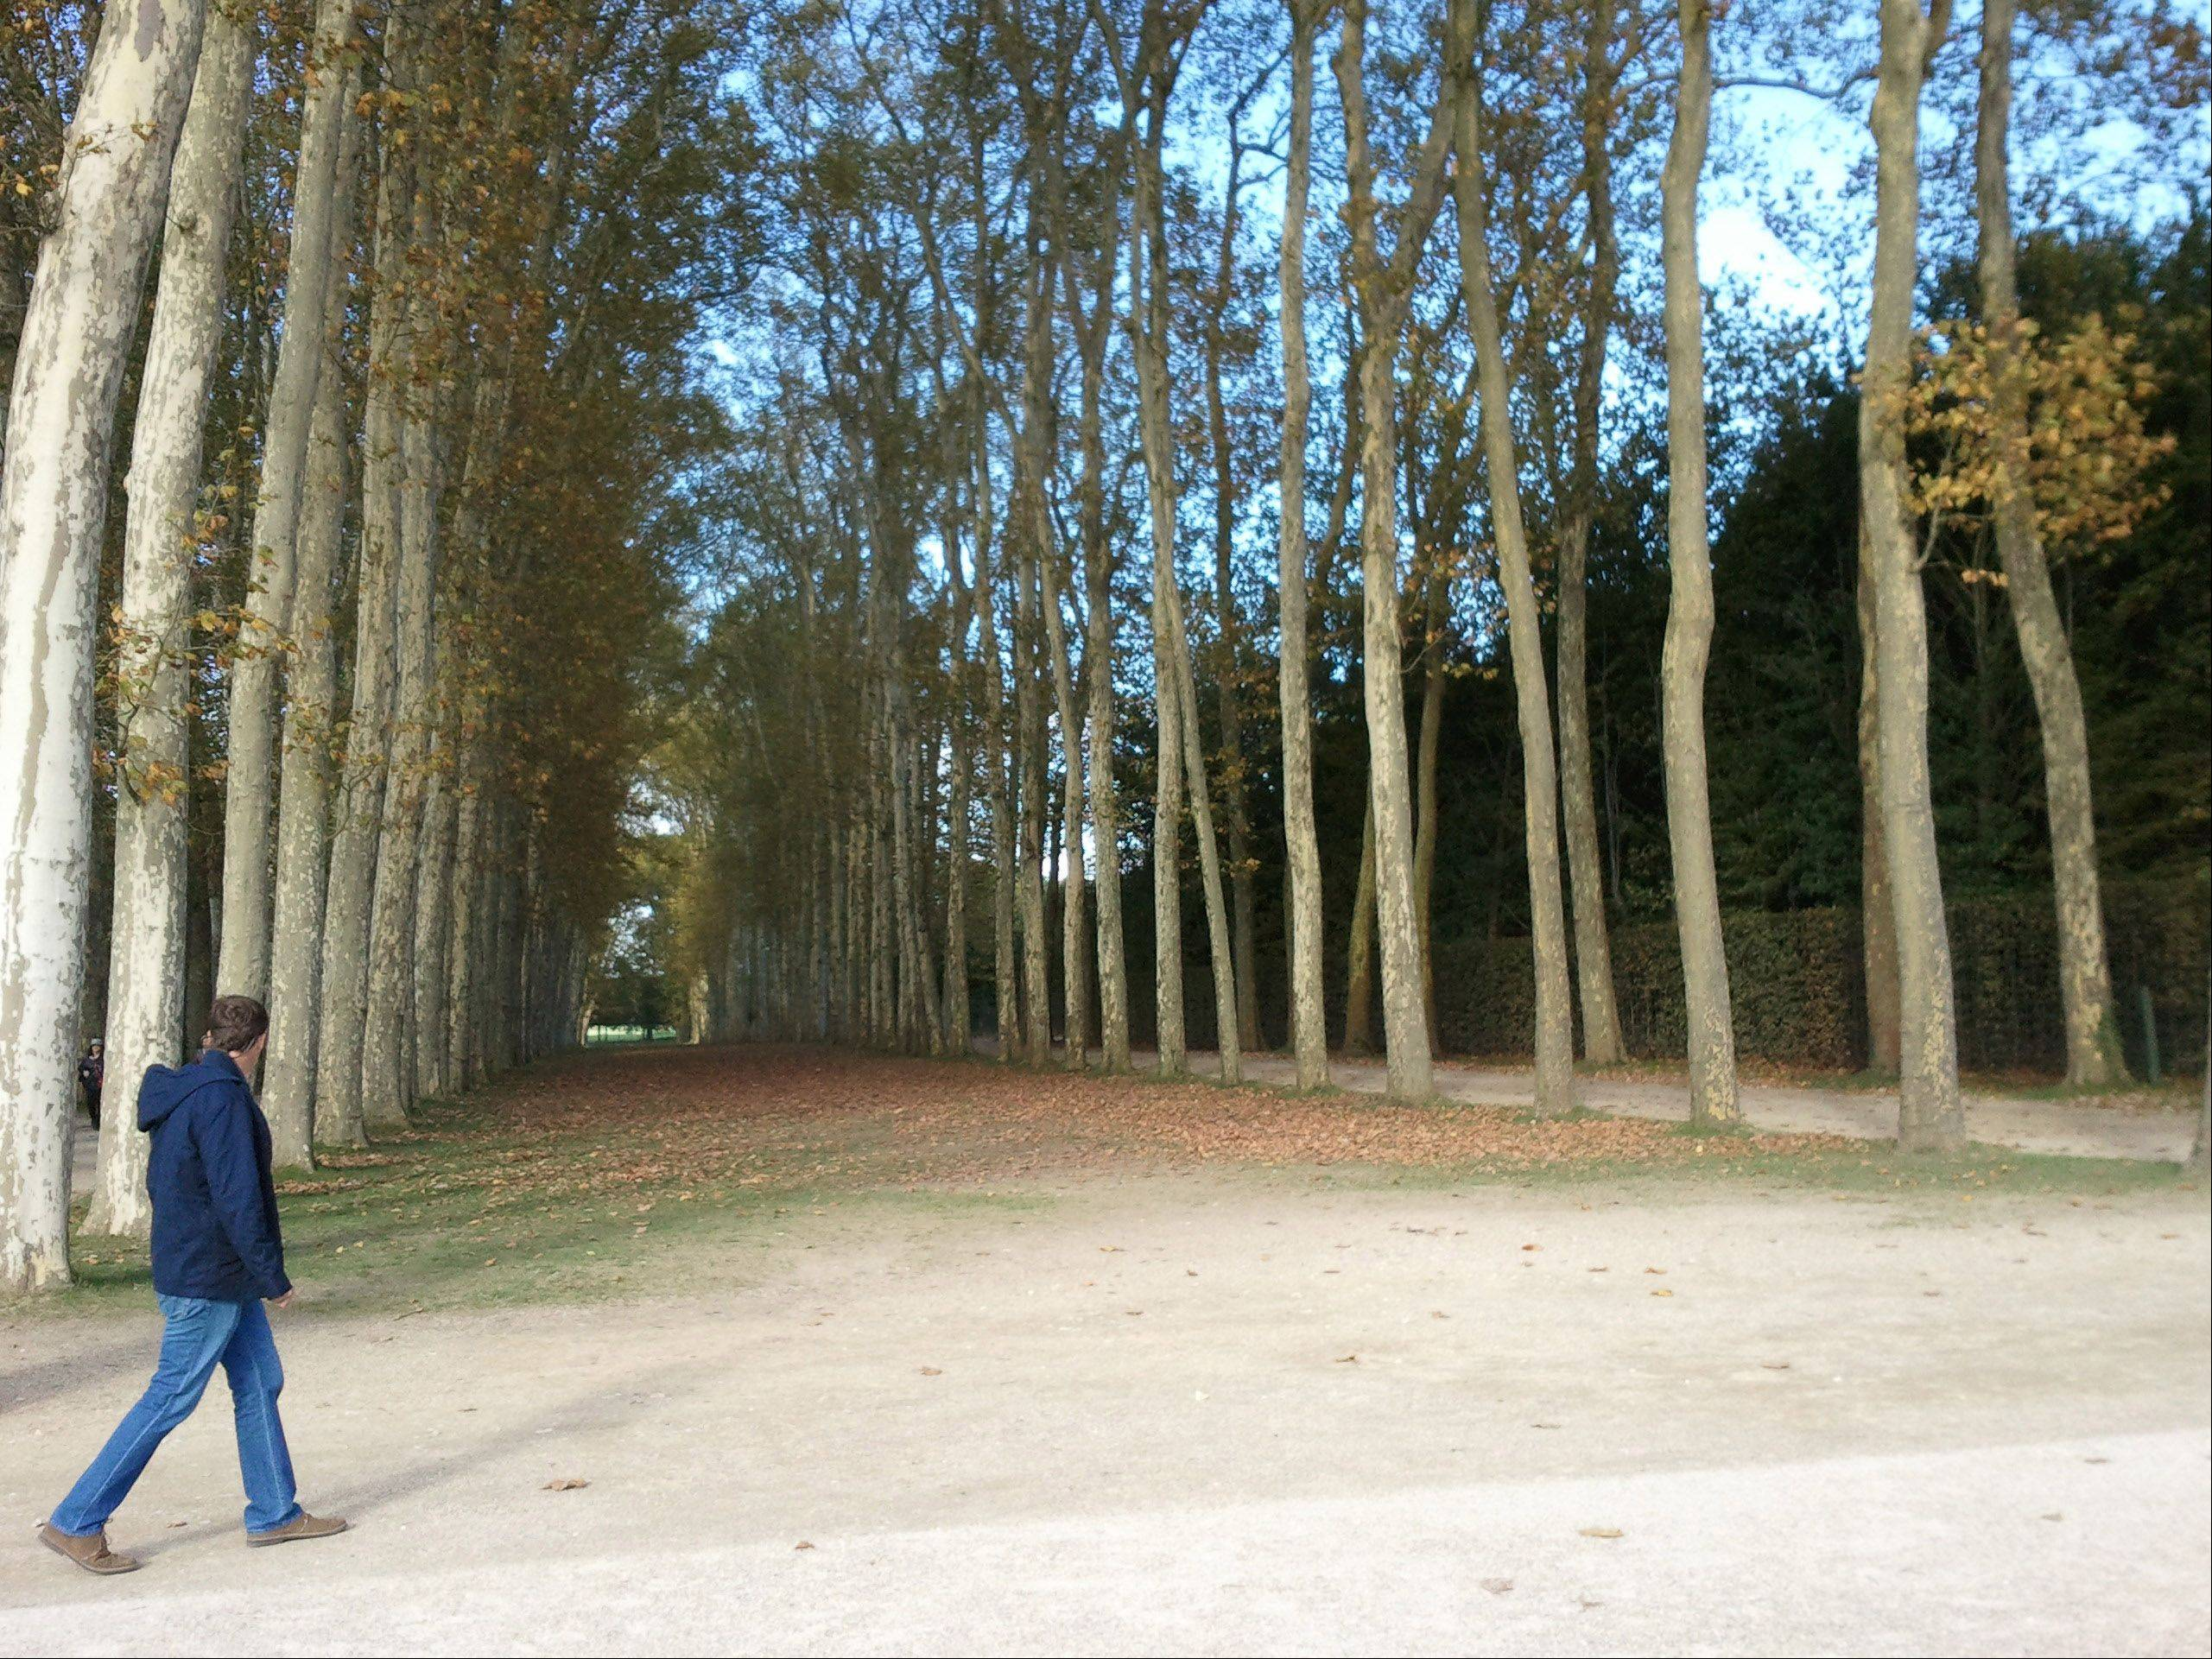 A man walks past the gardens at the palace of Versailles, France on October 12.